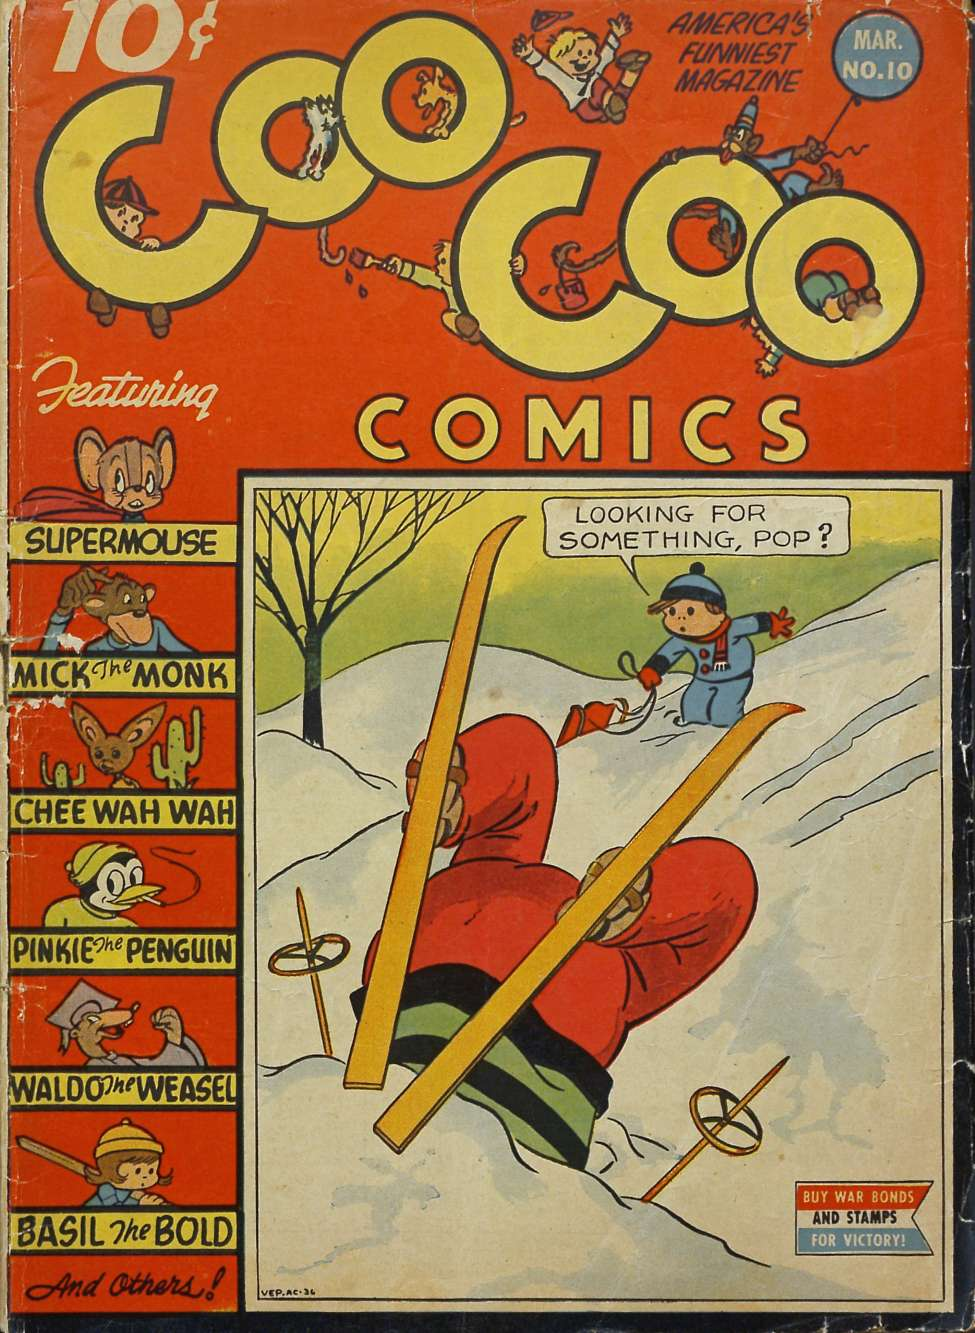 Comic Book Cover For Coo Coo Comics #10